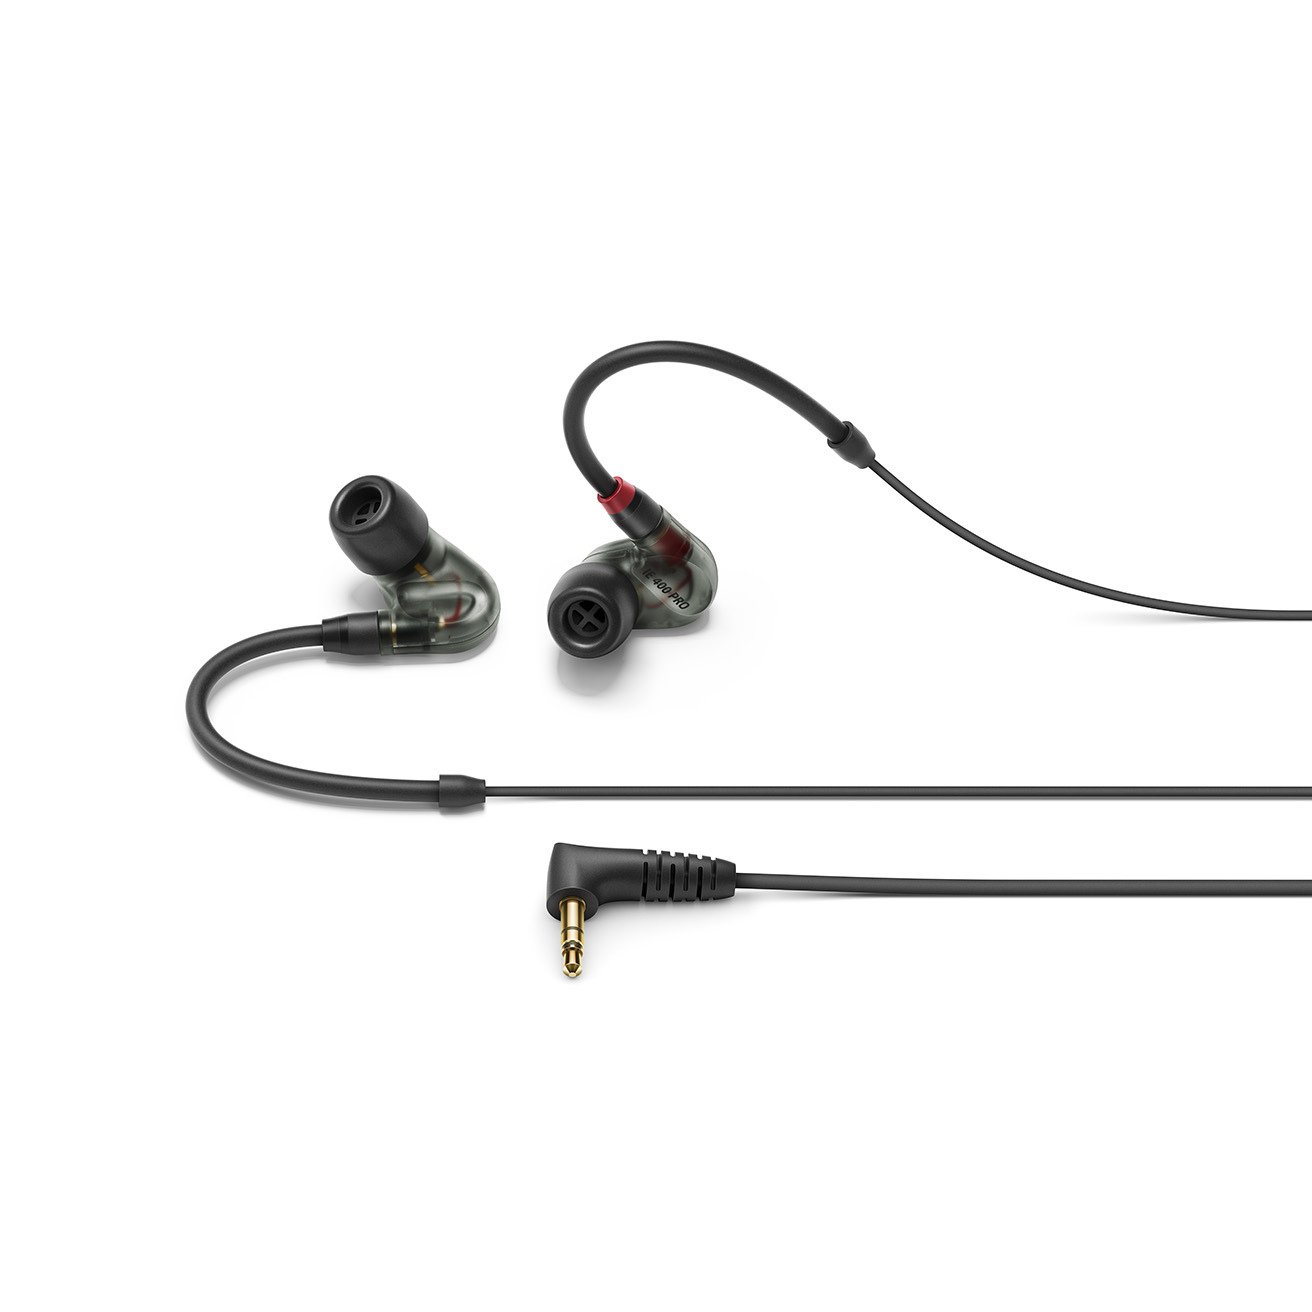 Tai nghe Sennheiser IE 400 Pro cable cao cấp